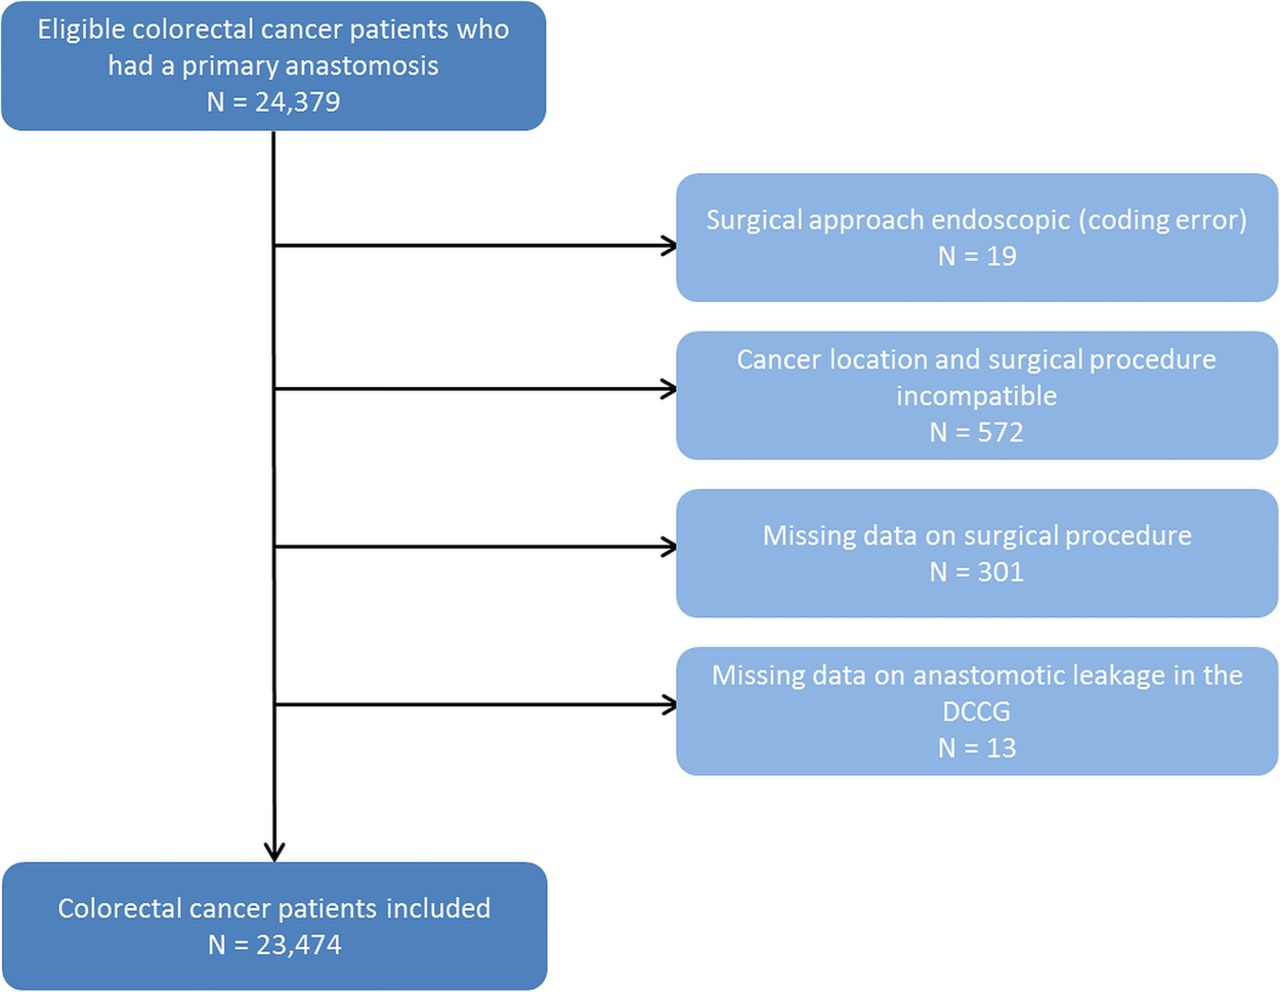 Preadmission Glucocorticoid Use And Anastomotic Leakage After Colon And Rectal Cancer Resections A Danish Cohort Study Bmj Open